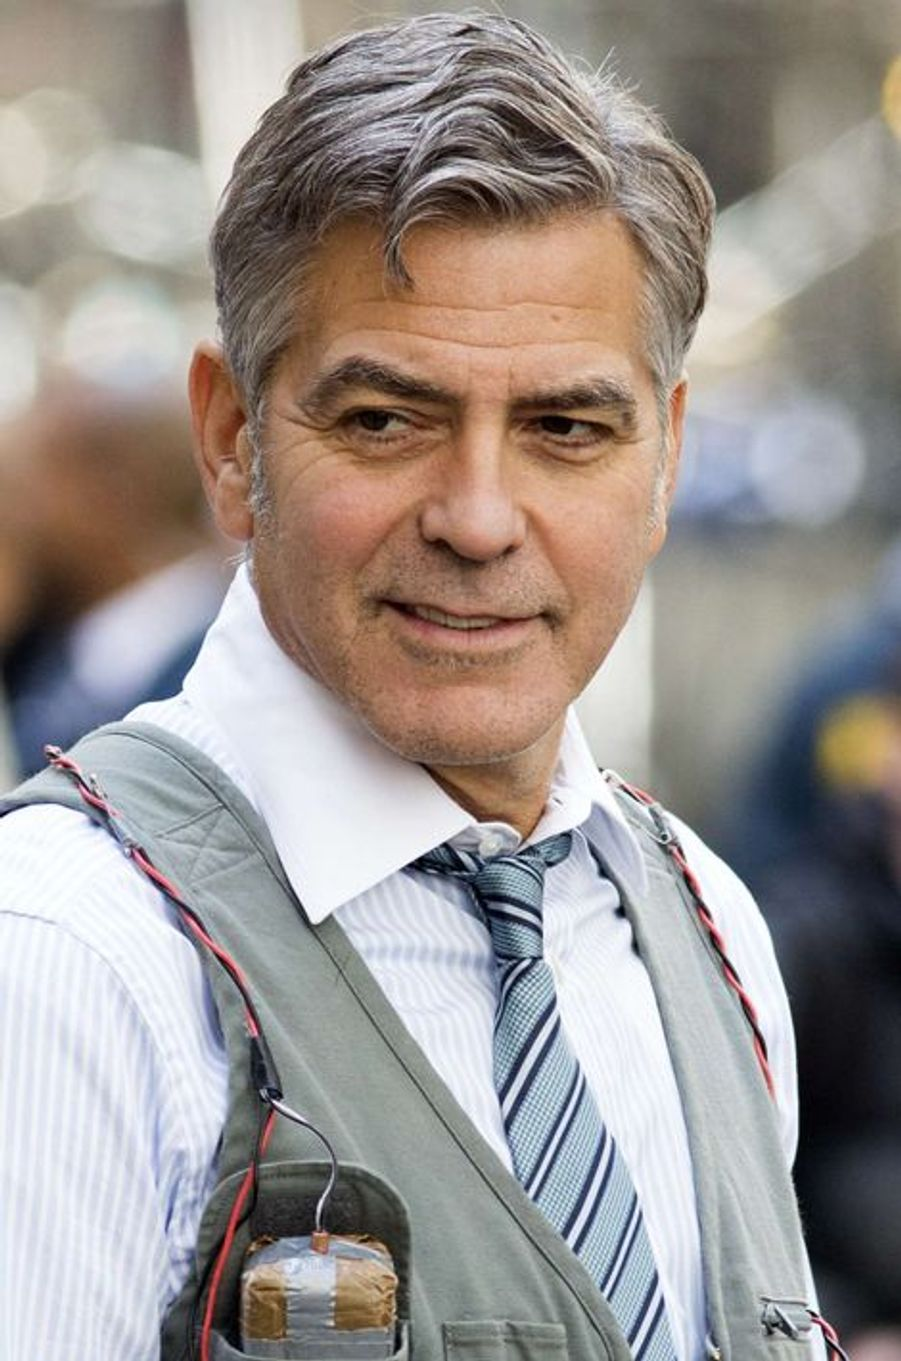 George Clooney à New York le 12 avril 2015